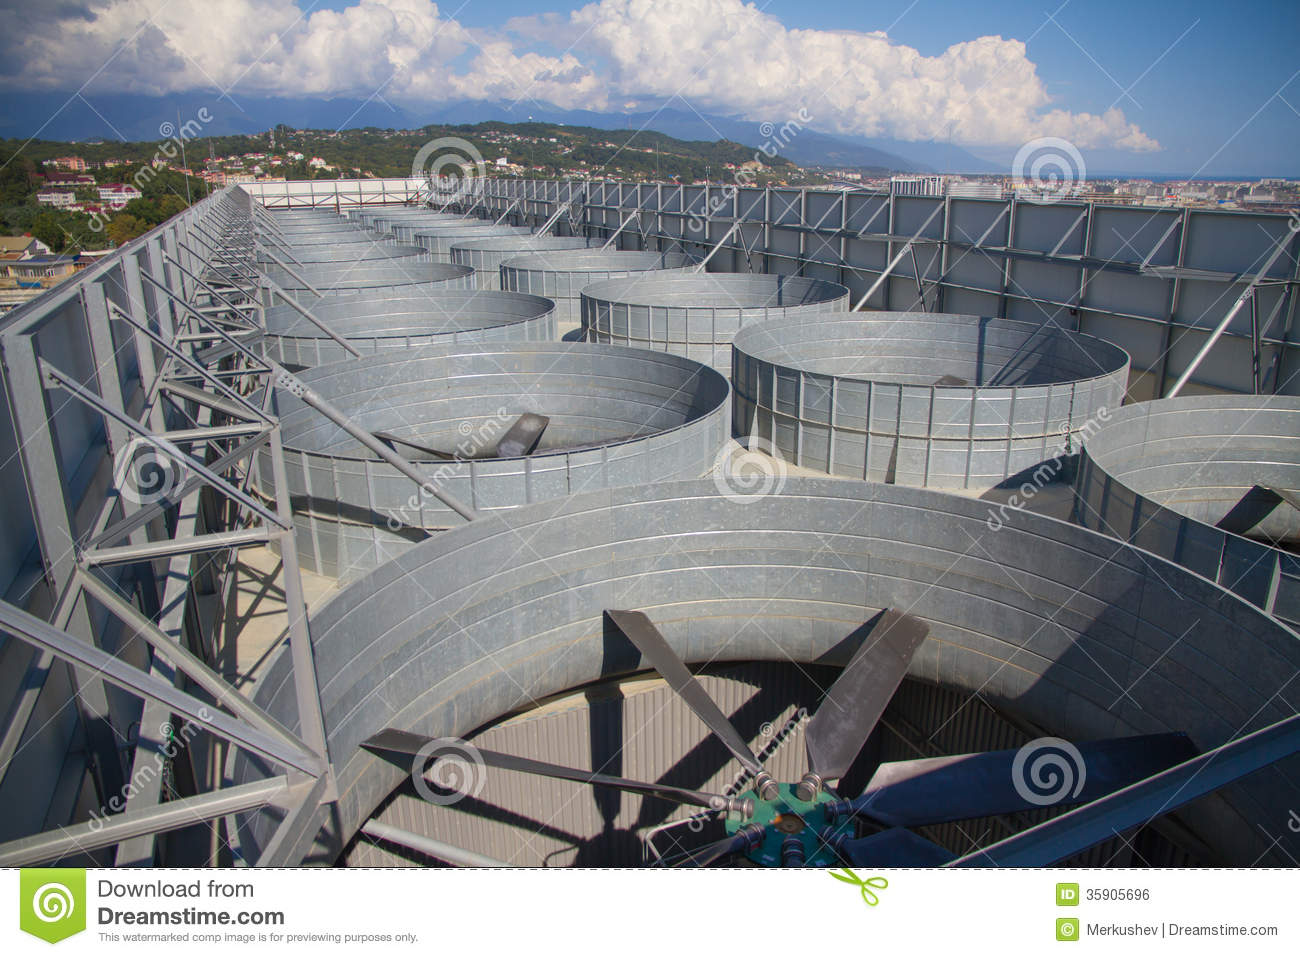 Industrial Building Ventiltors : Industrial ventilation system roof of the plant royalty